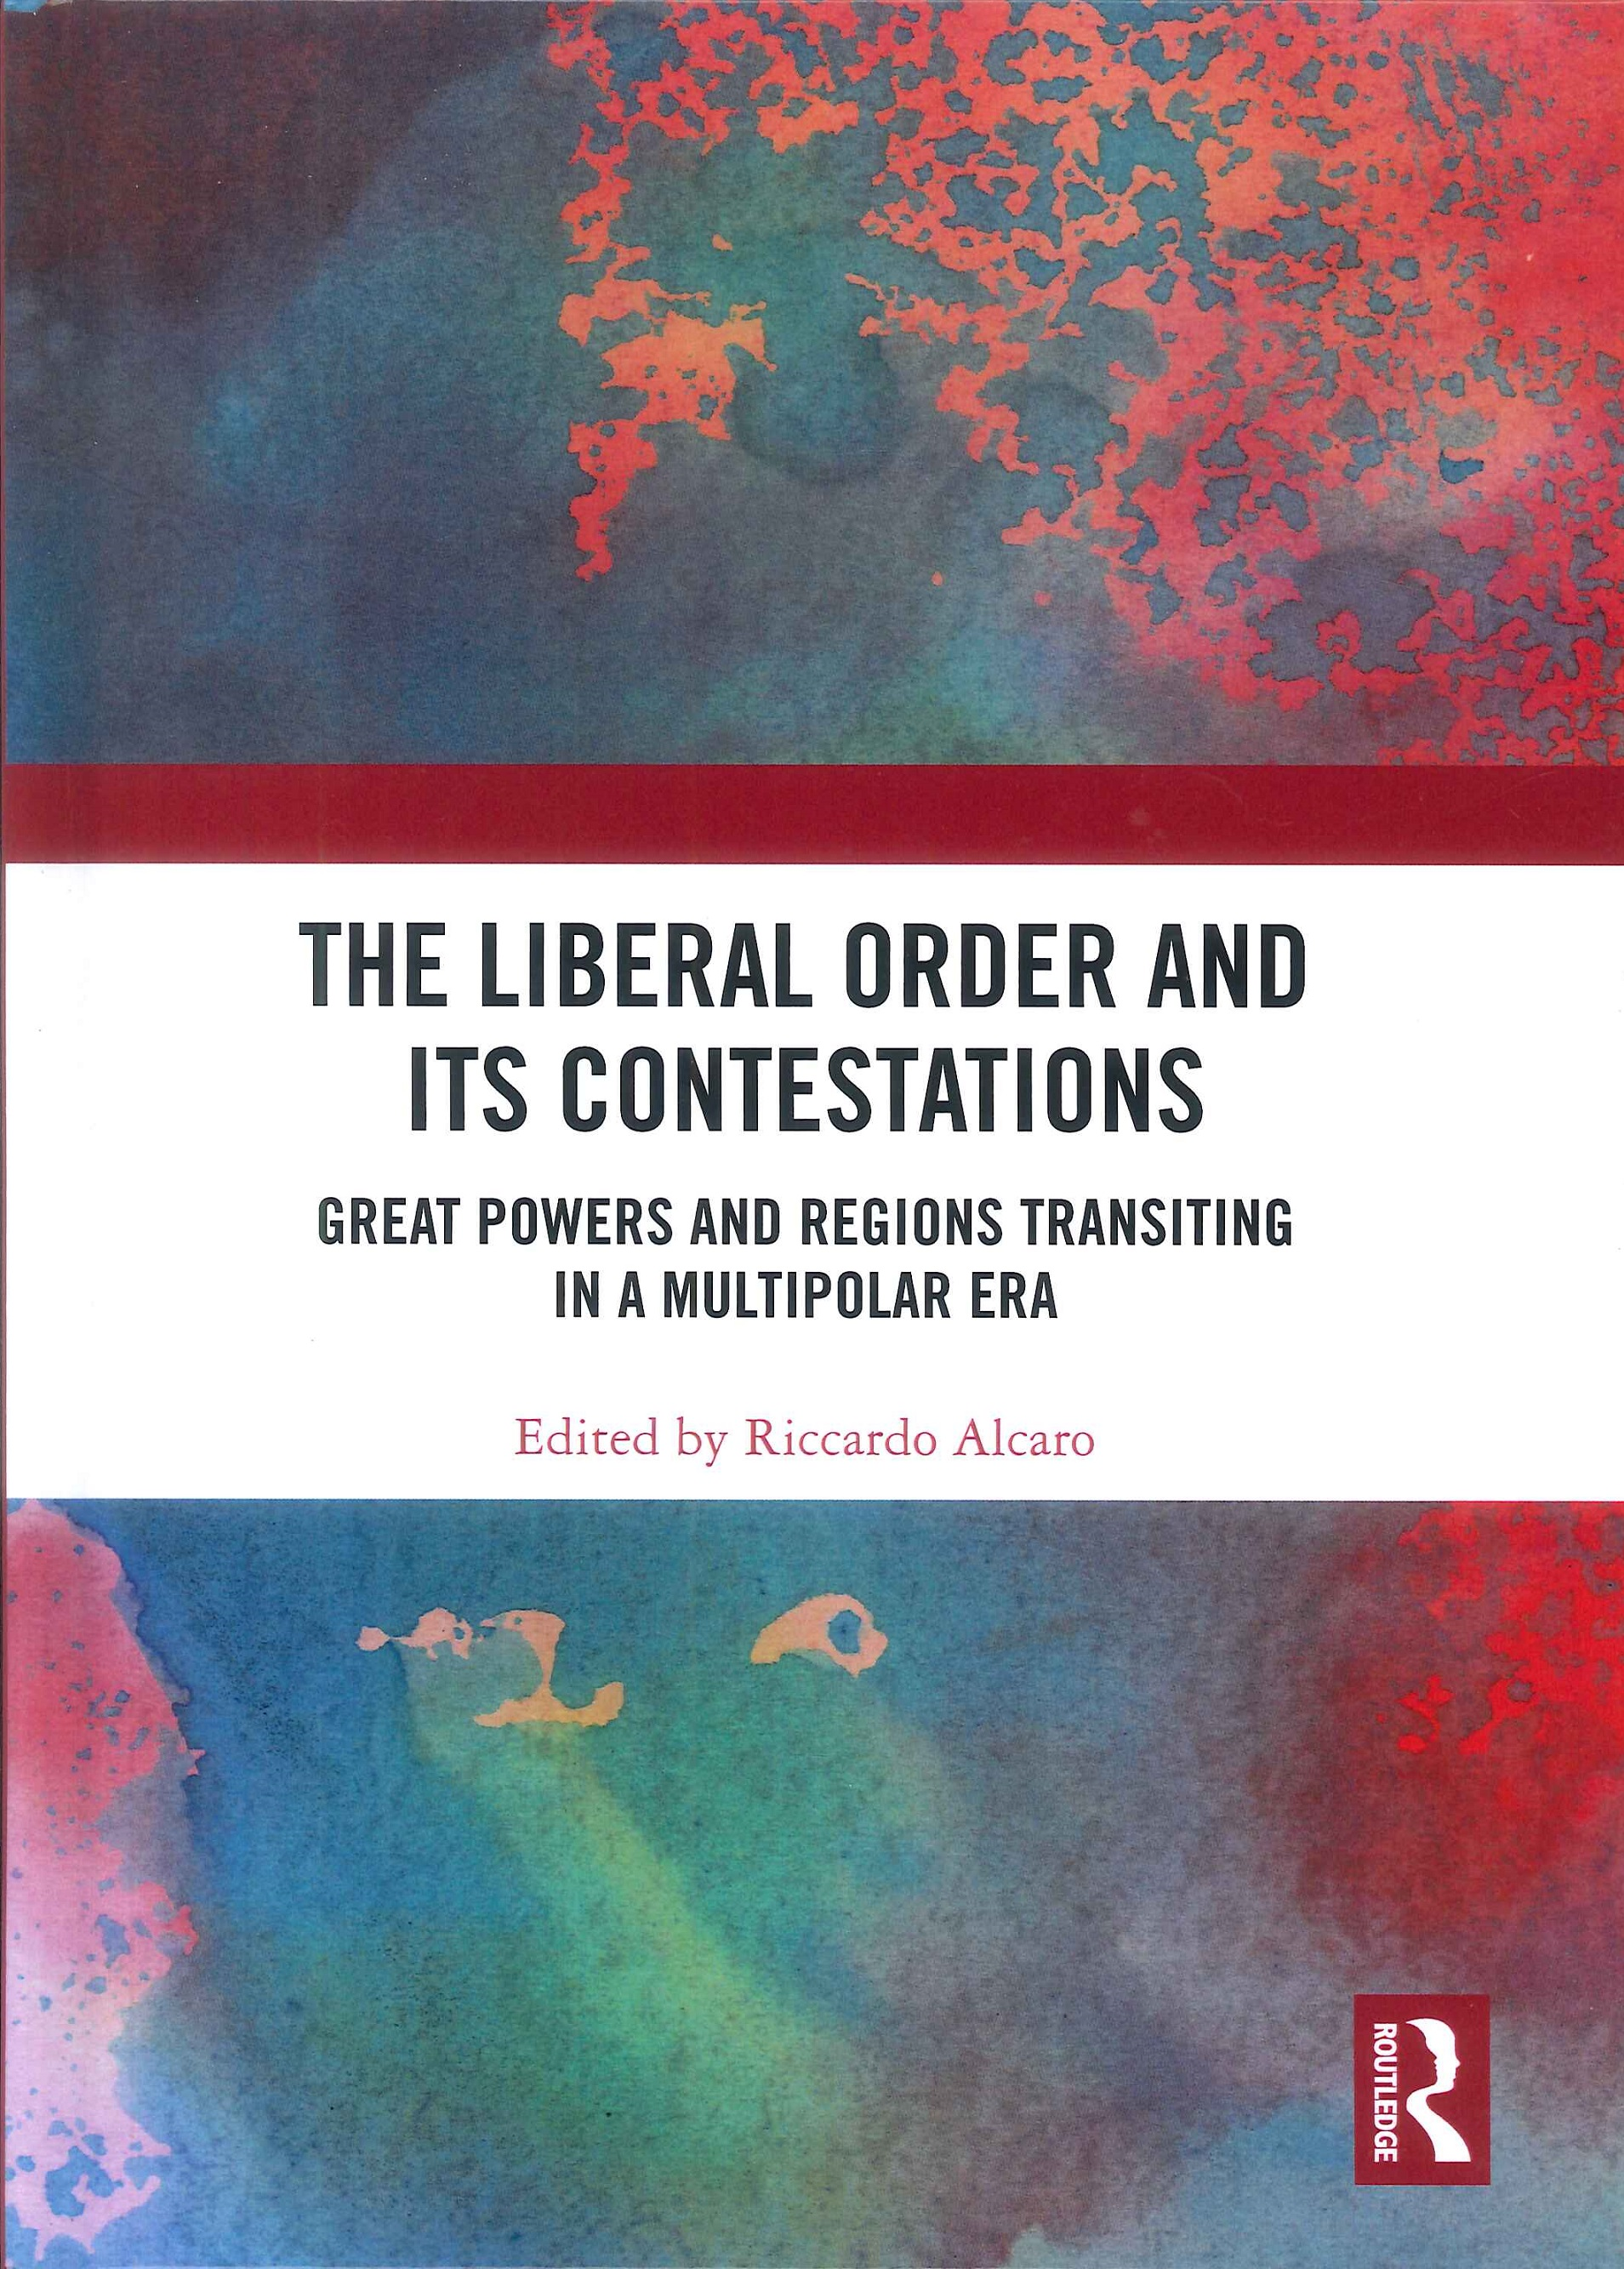 The liberal order and its contestations:great powers and regions transiting in a multipolar era